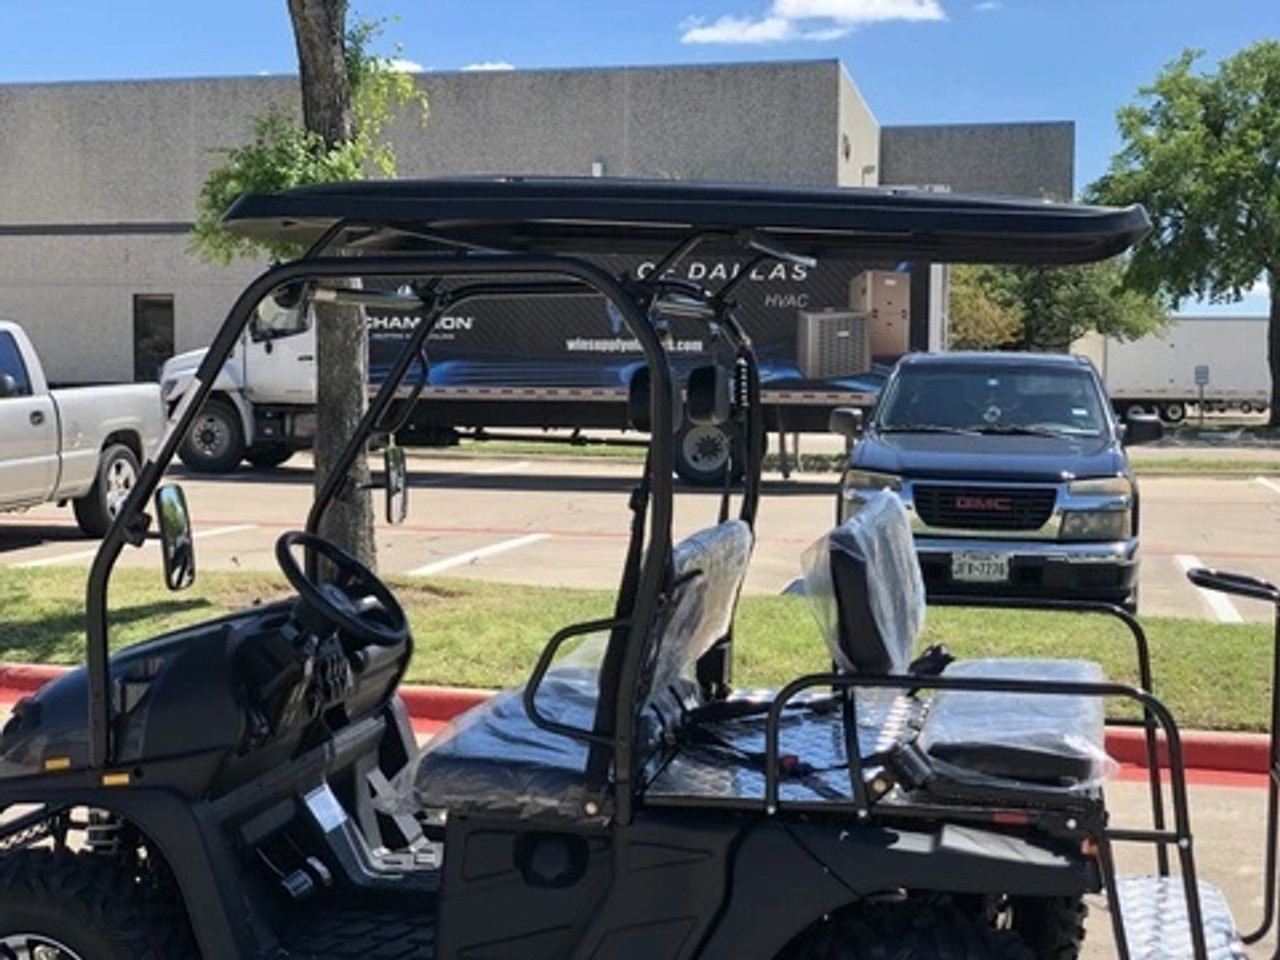 BLUE - Cazador Outfitter 200x Fully Loaded Golf Cart 4 seater